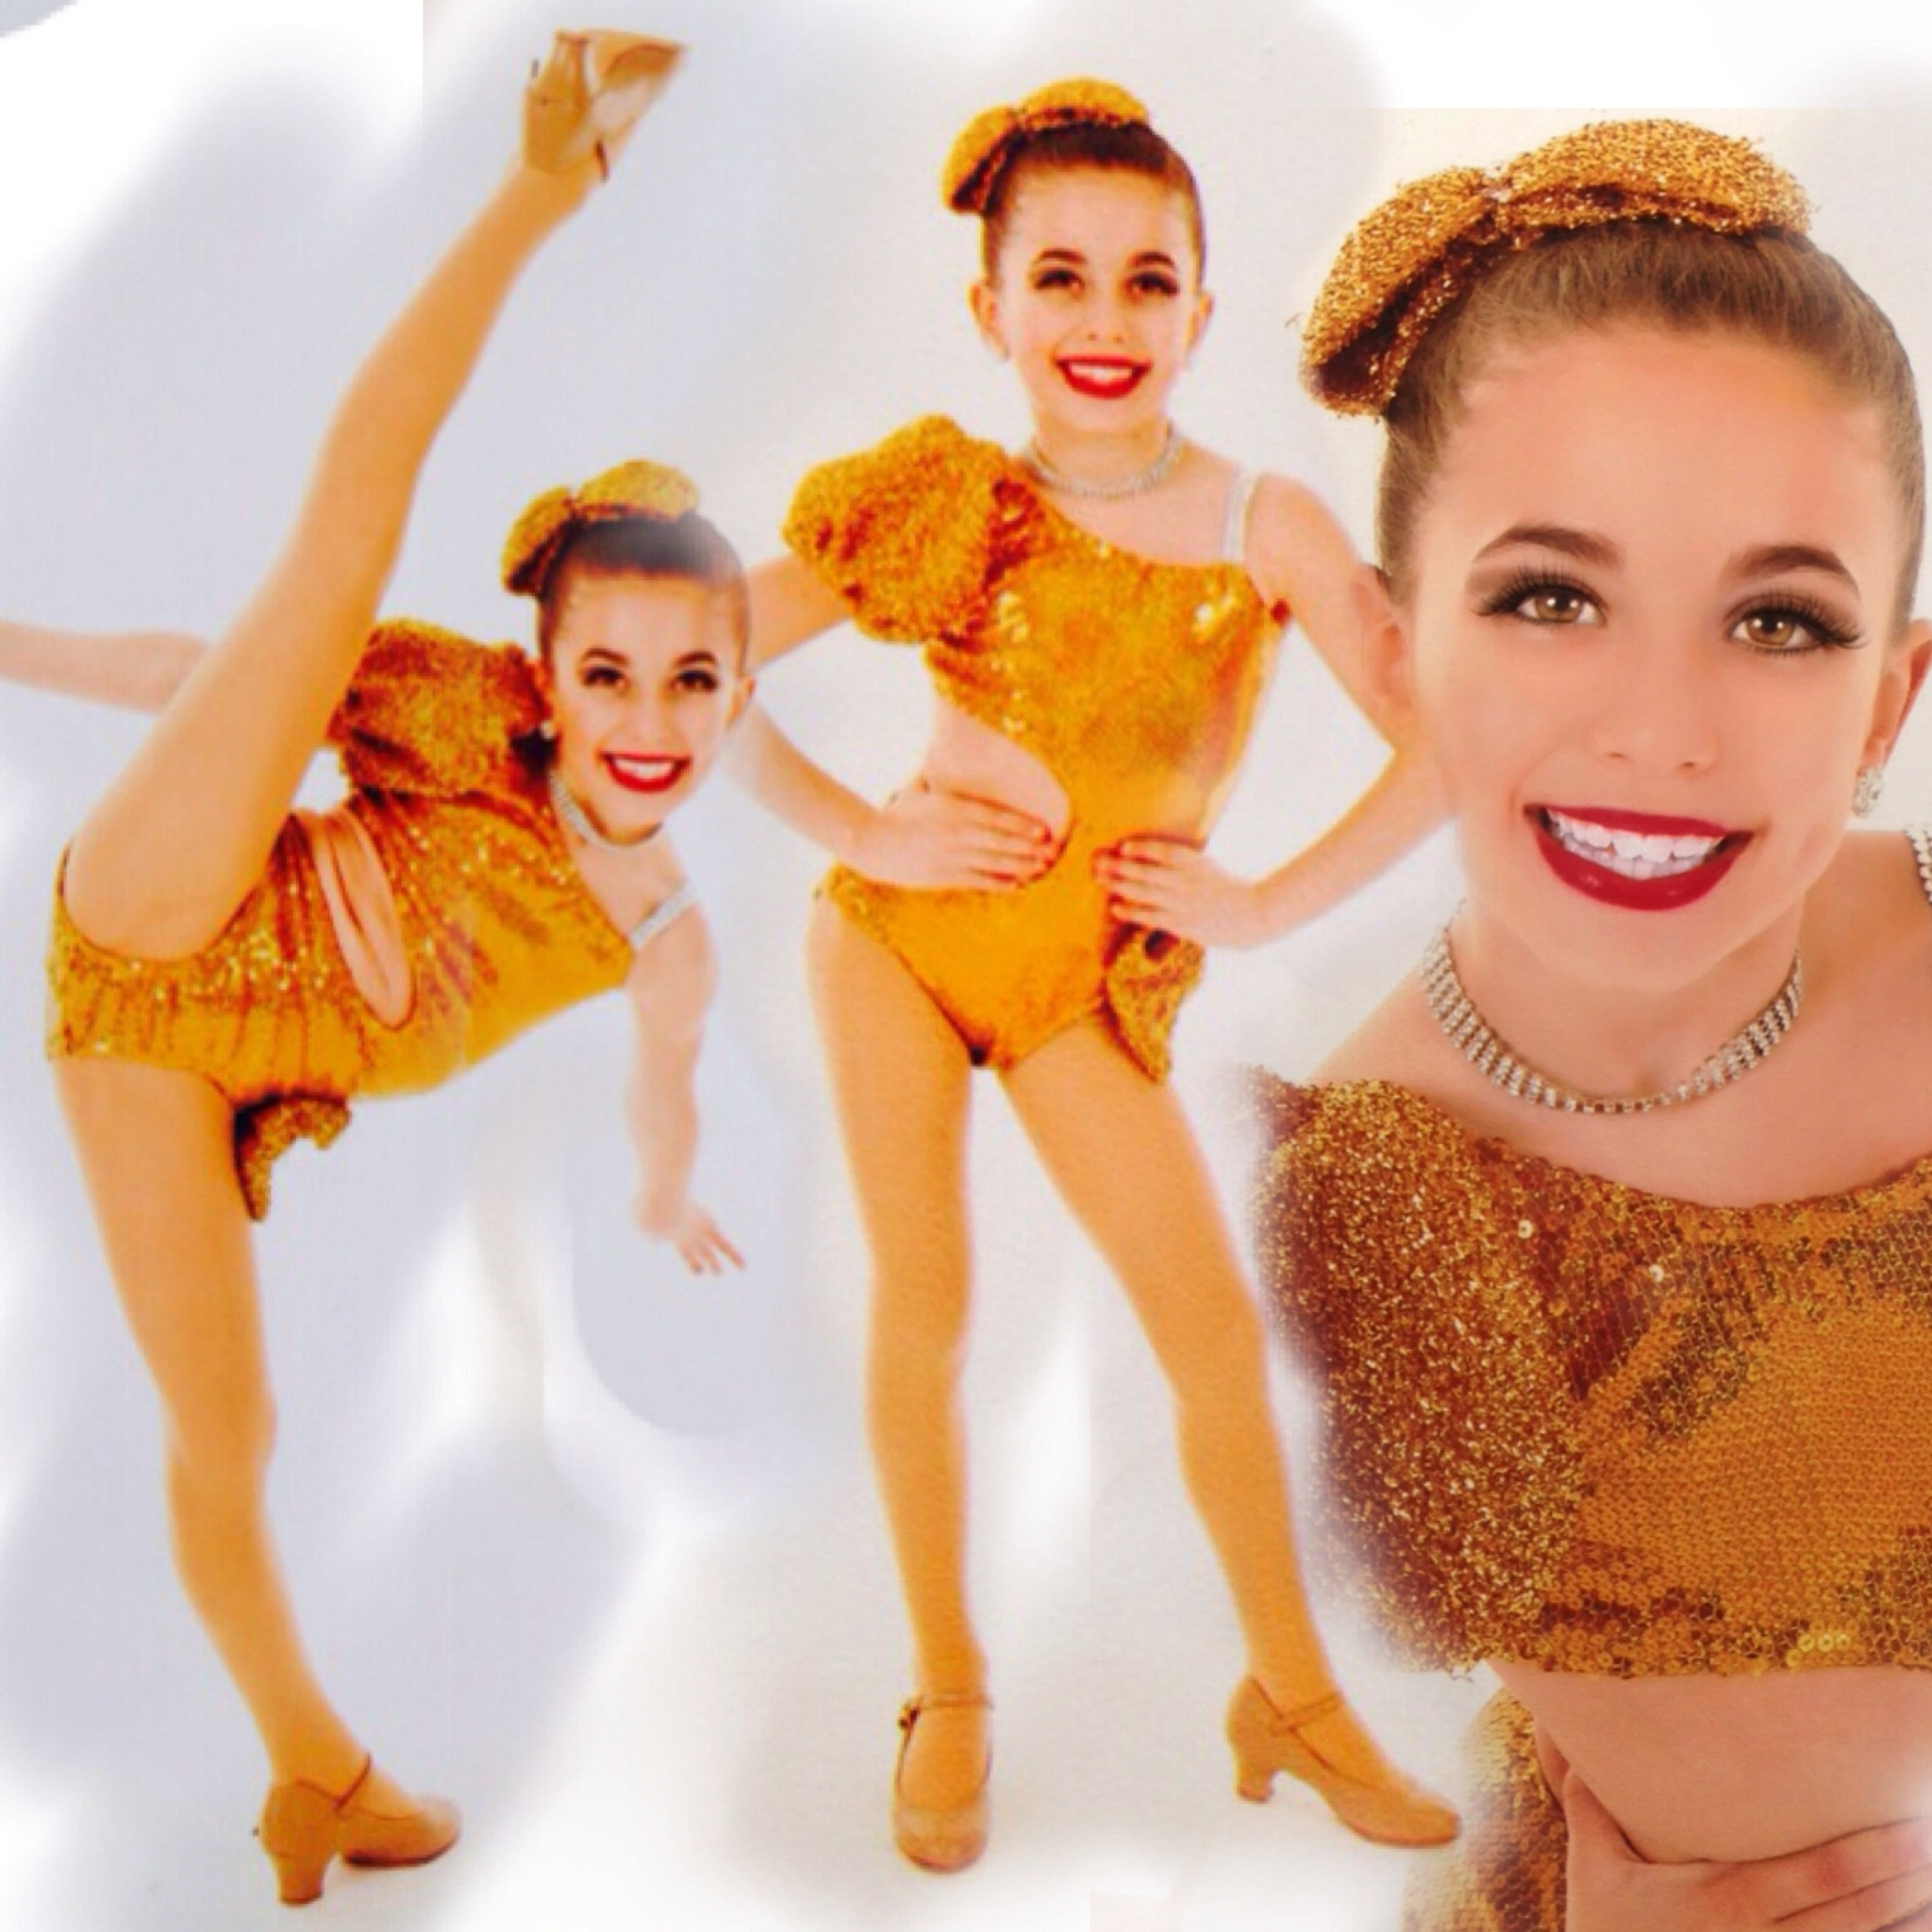 GiaNina-Jazz-solo-comp-pics-collage-2014.jpg